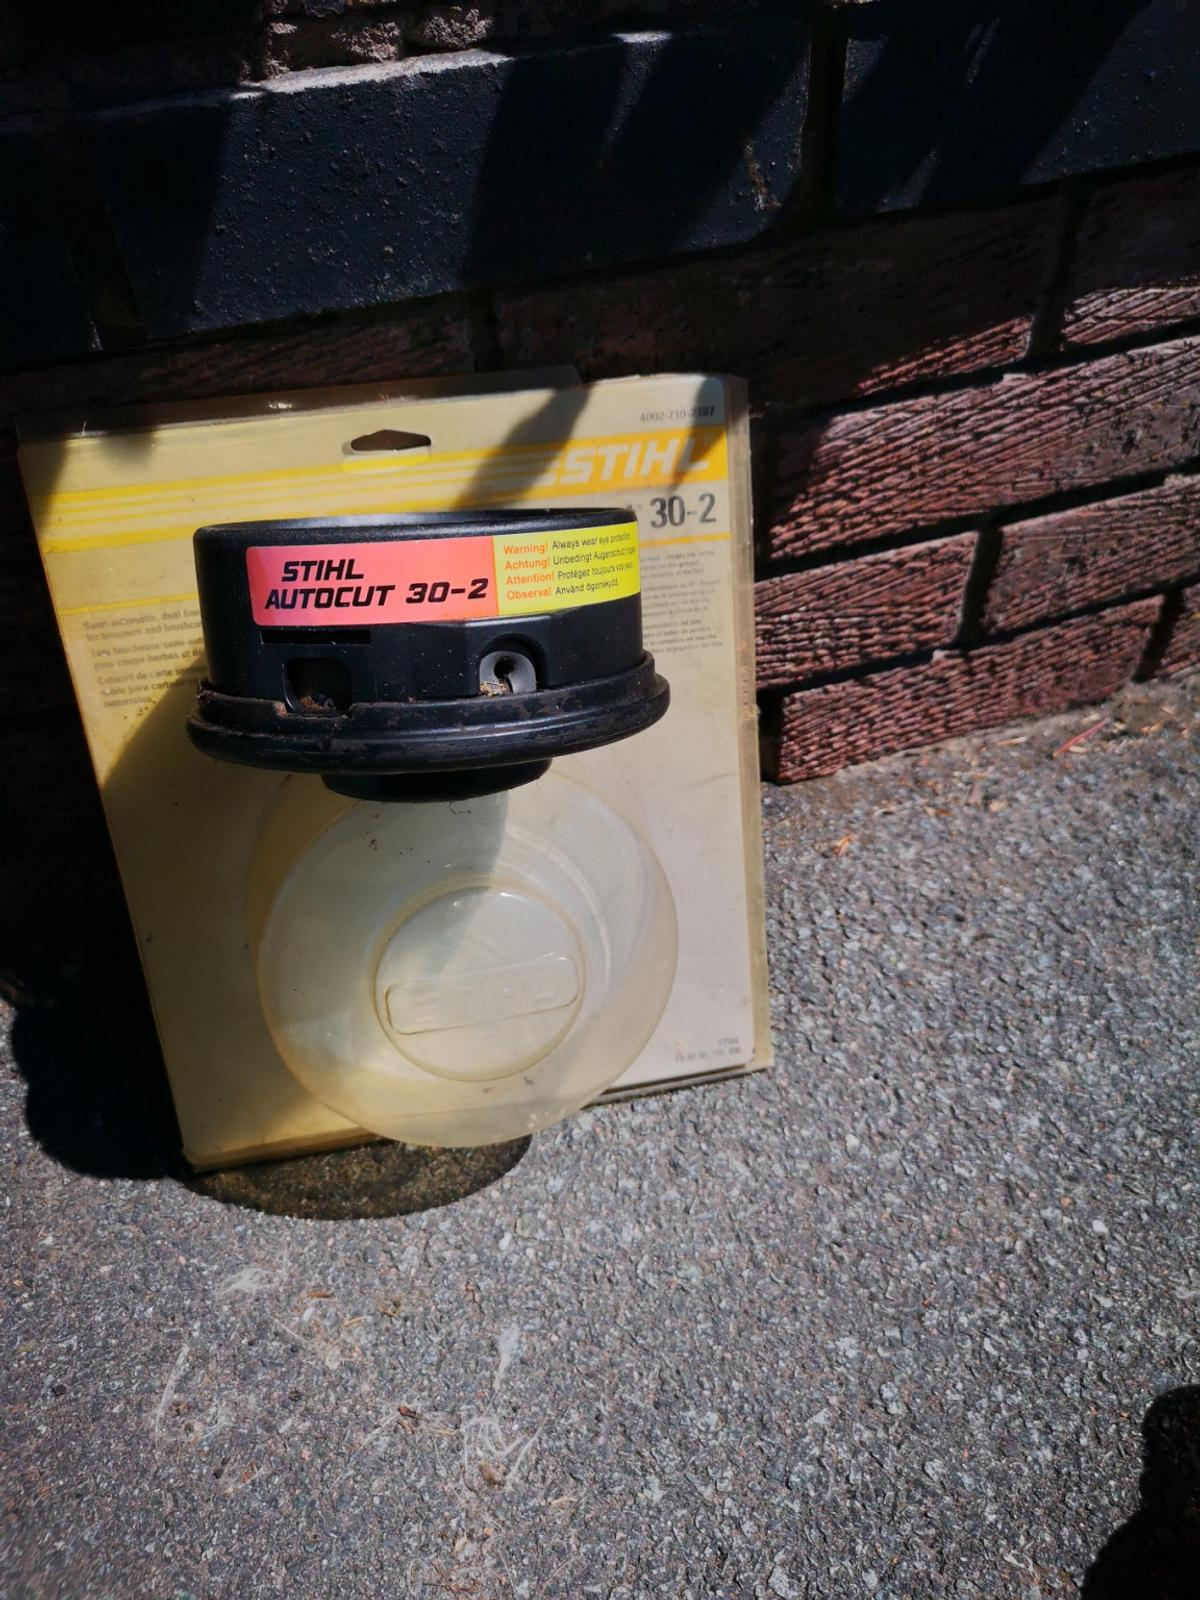 Strimmer bump feed head for sthil strimmer